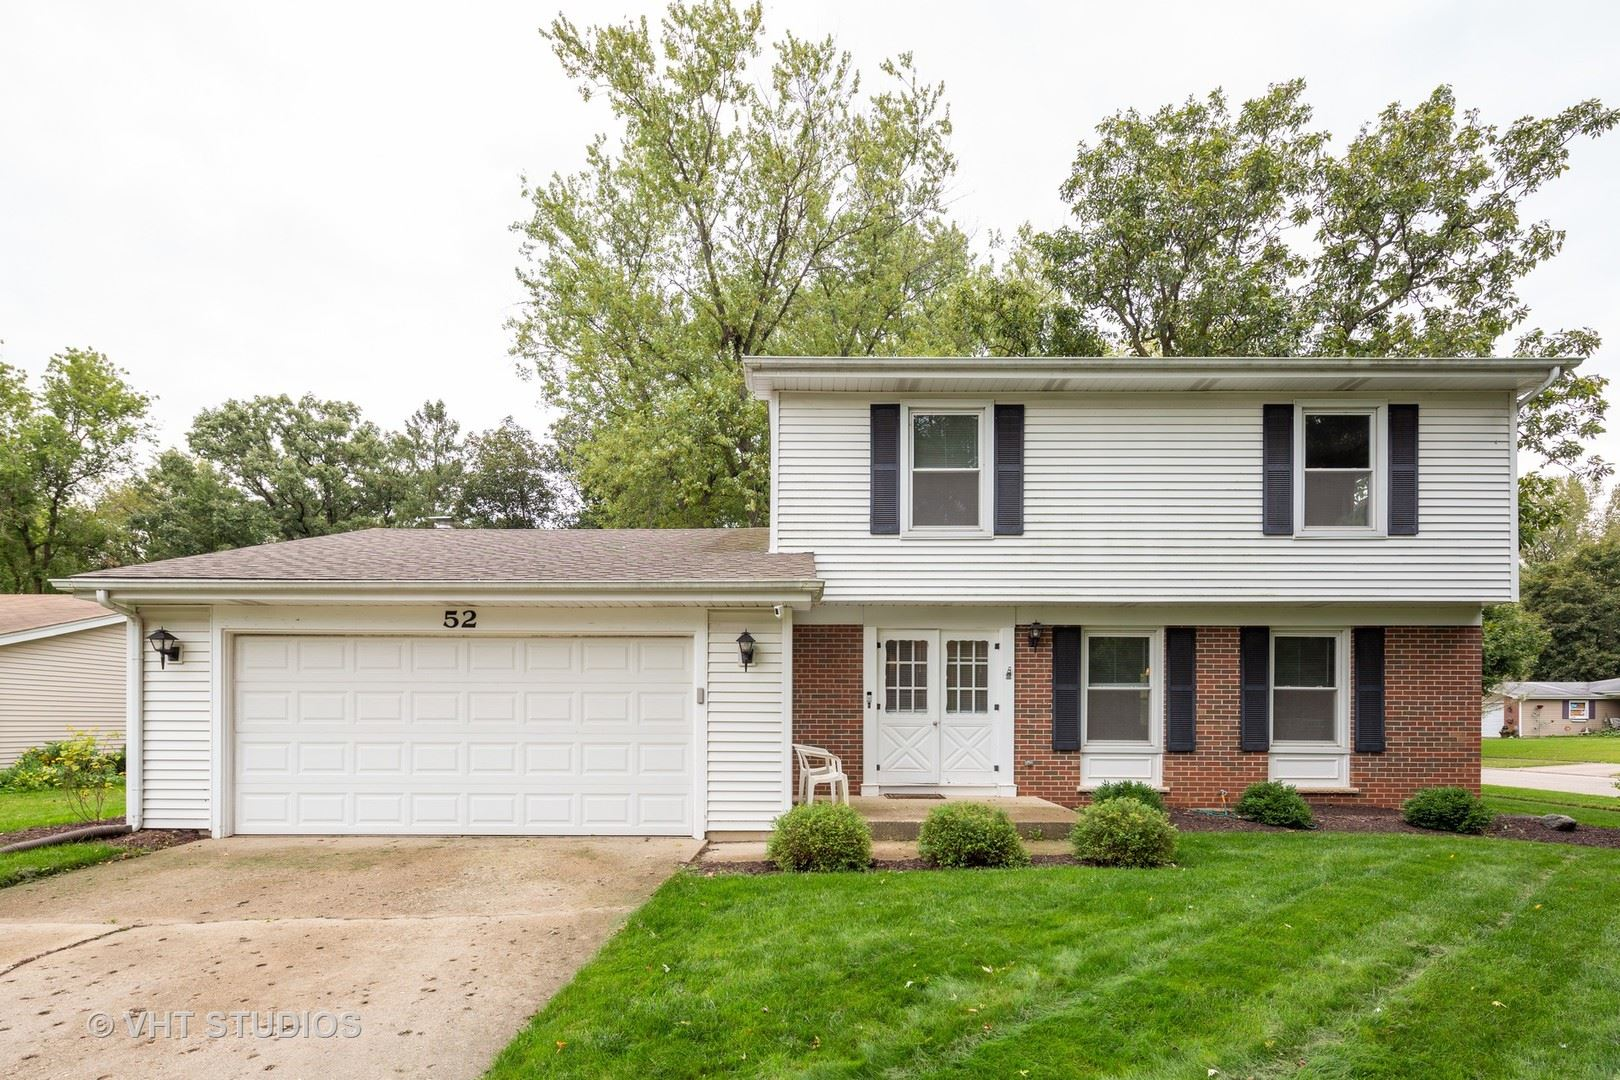 52 Sycamore Lane, Crystal Lake, IL 60014 - #: 10523468